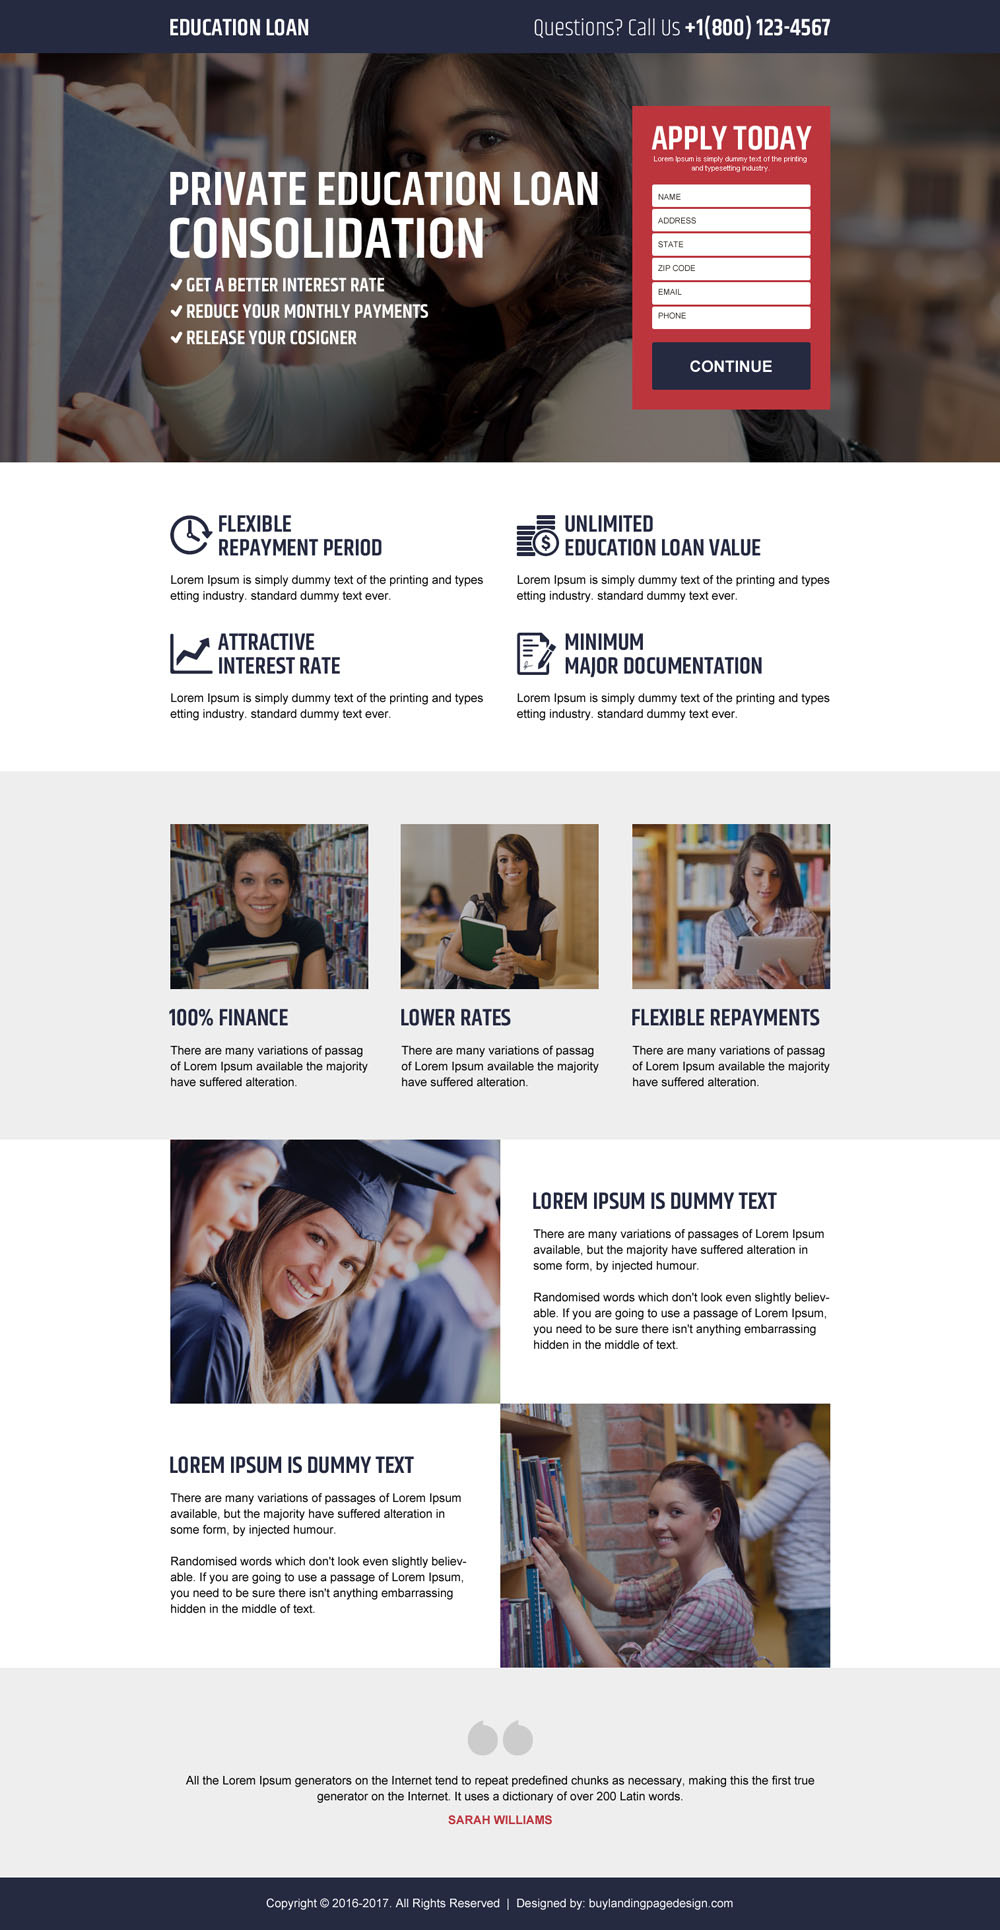 private-education-loan-consolidation-lead-gen-converting-landing-page-design-020